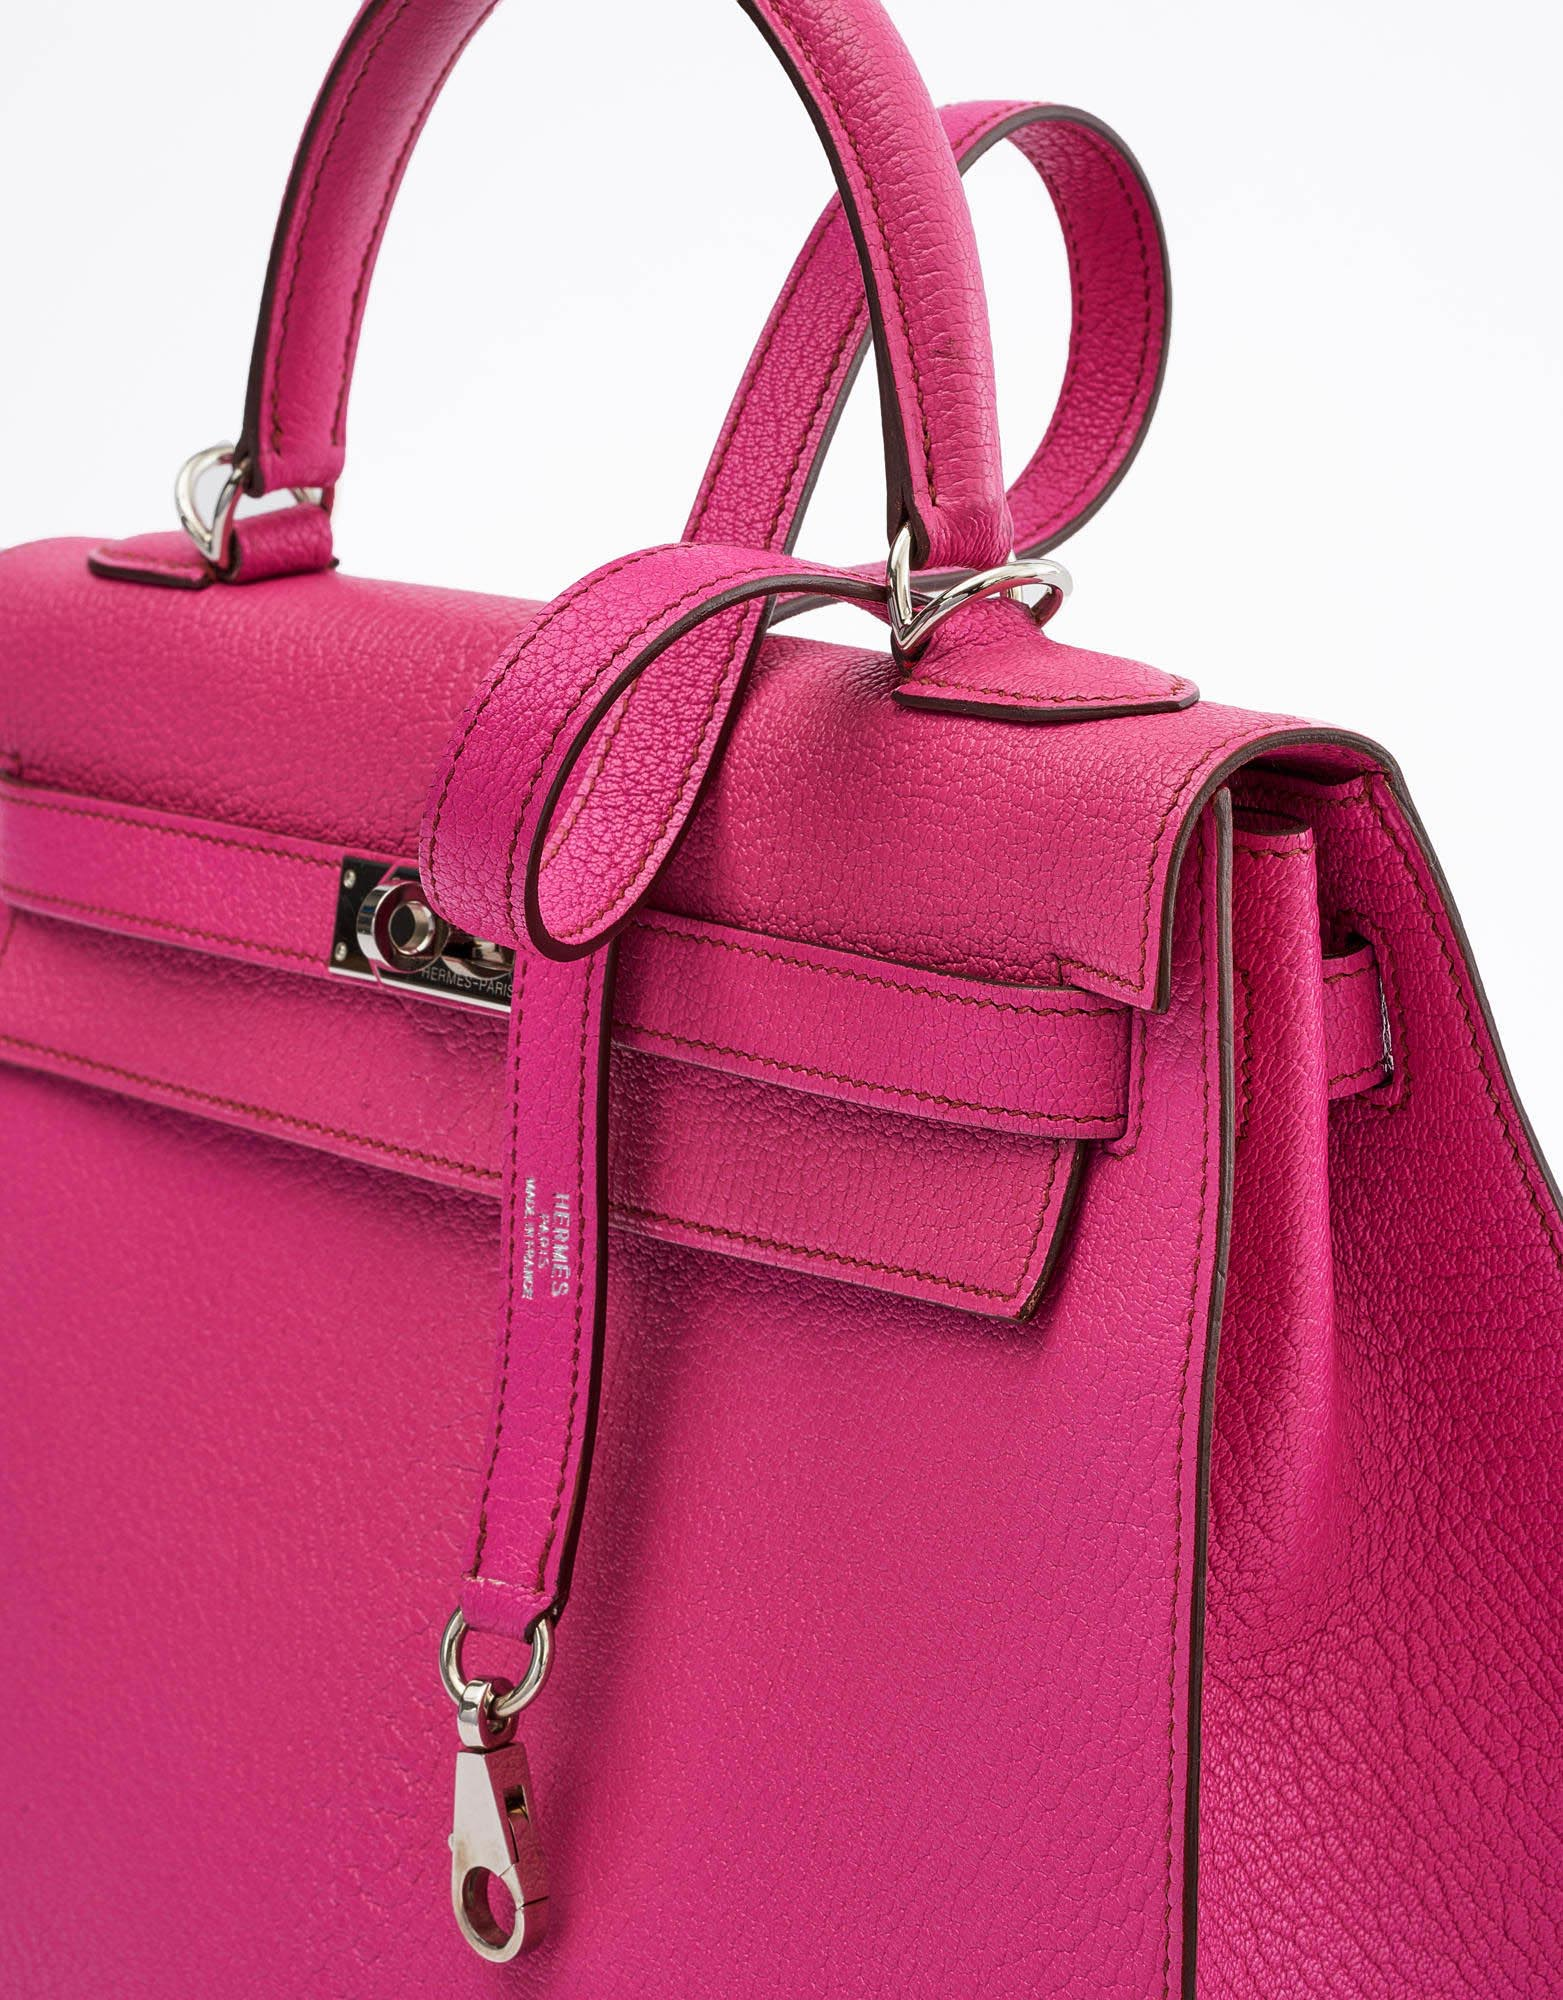 Hermes Kelly 32 Chevre Mysore Rose Shocking Saclàb